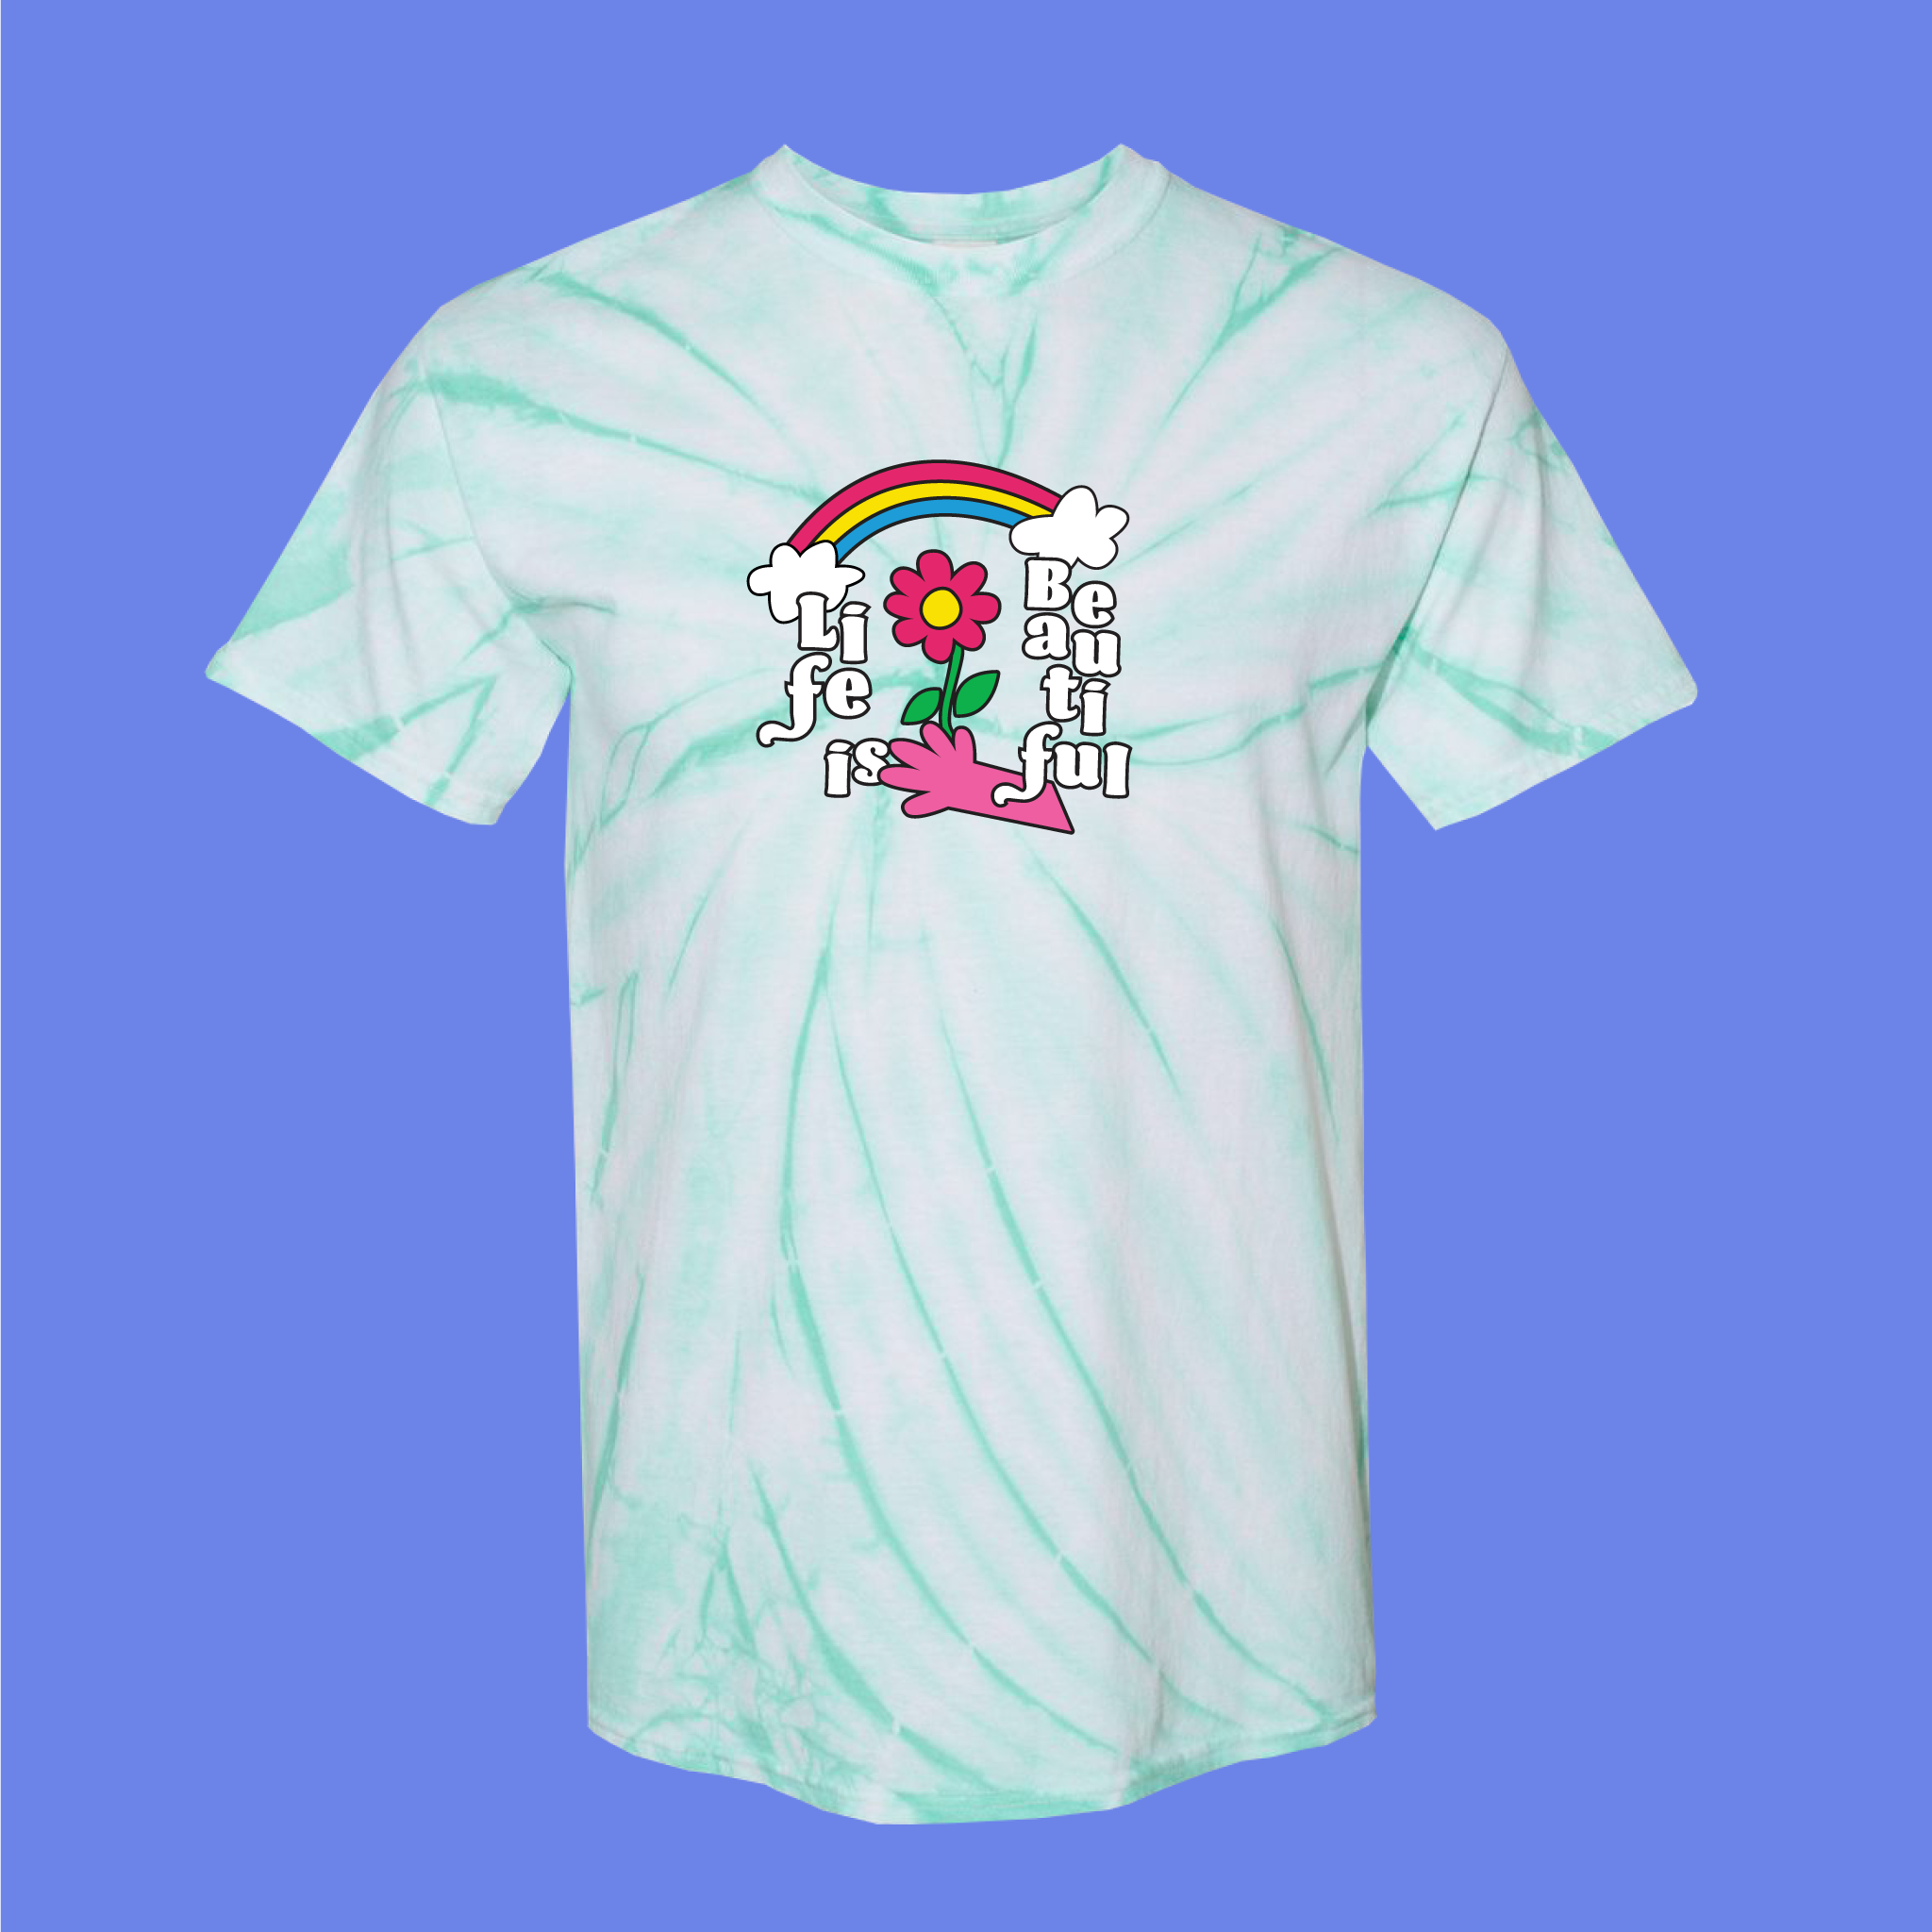 Flower Rainbow Tie Dye Tee by Demir Mujagic